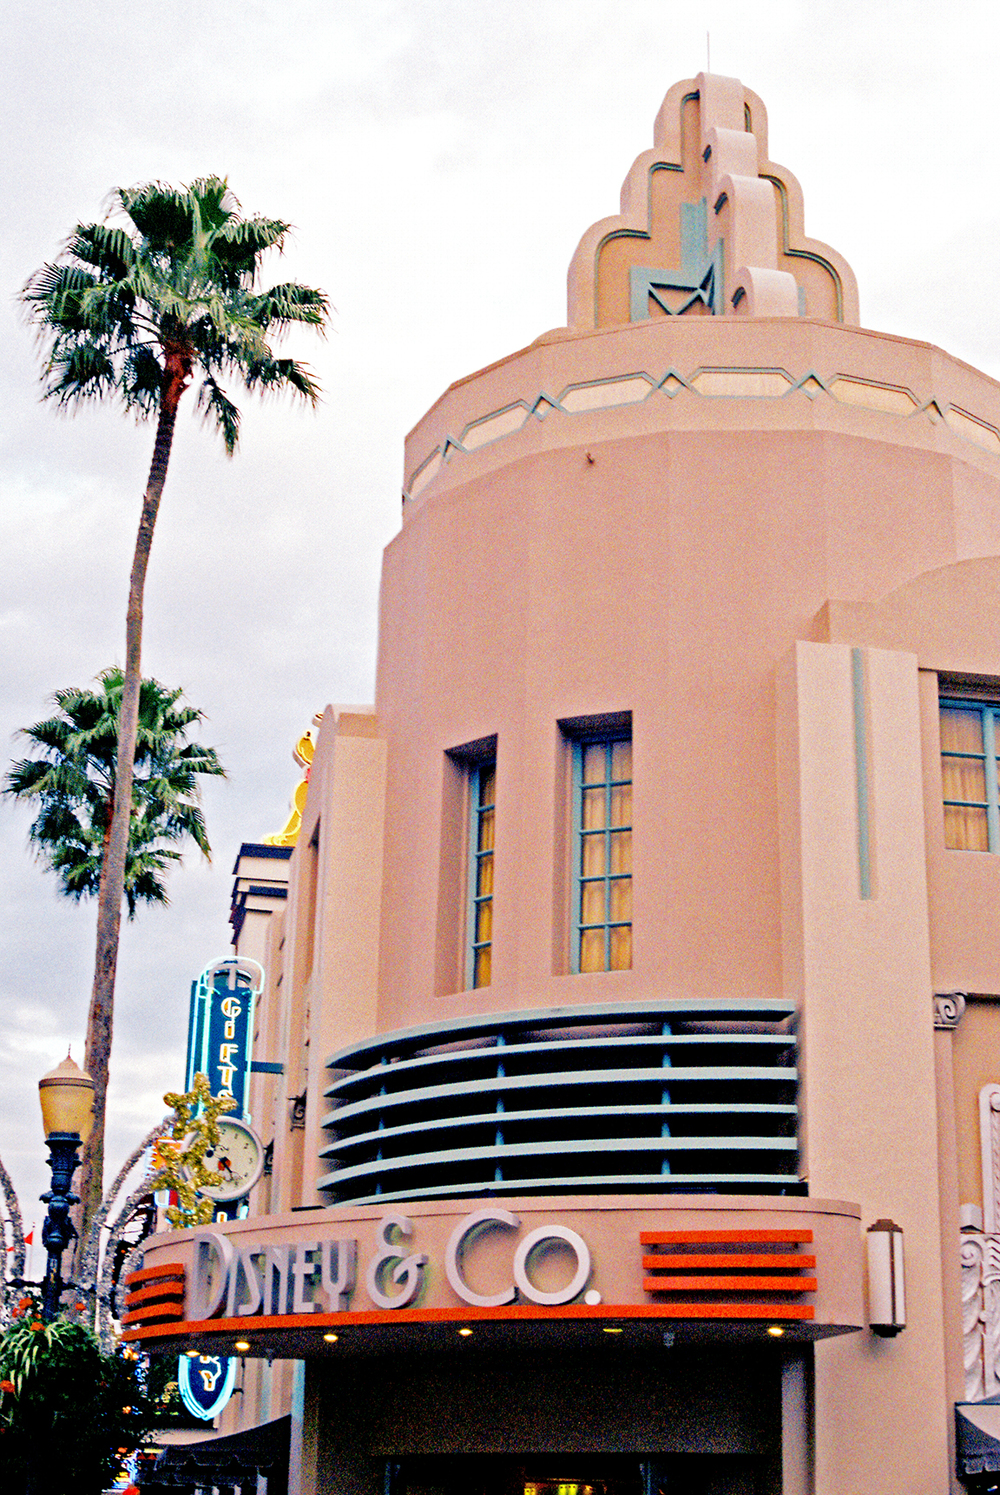 Disney & Co., Hollywood Studios